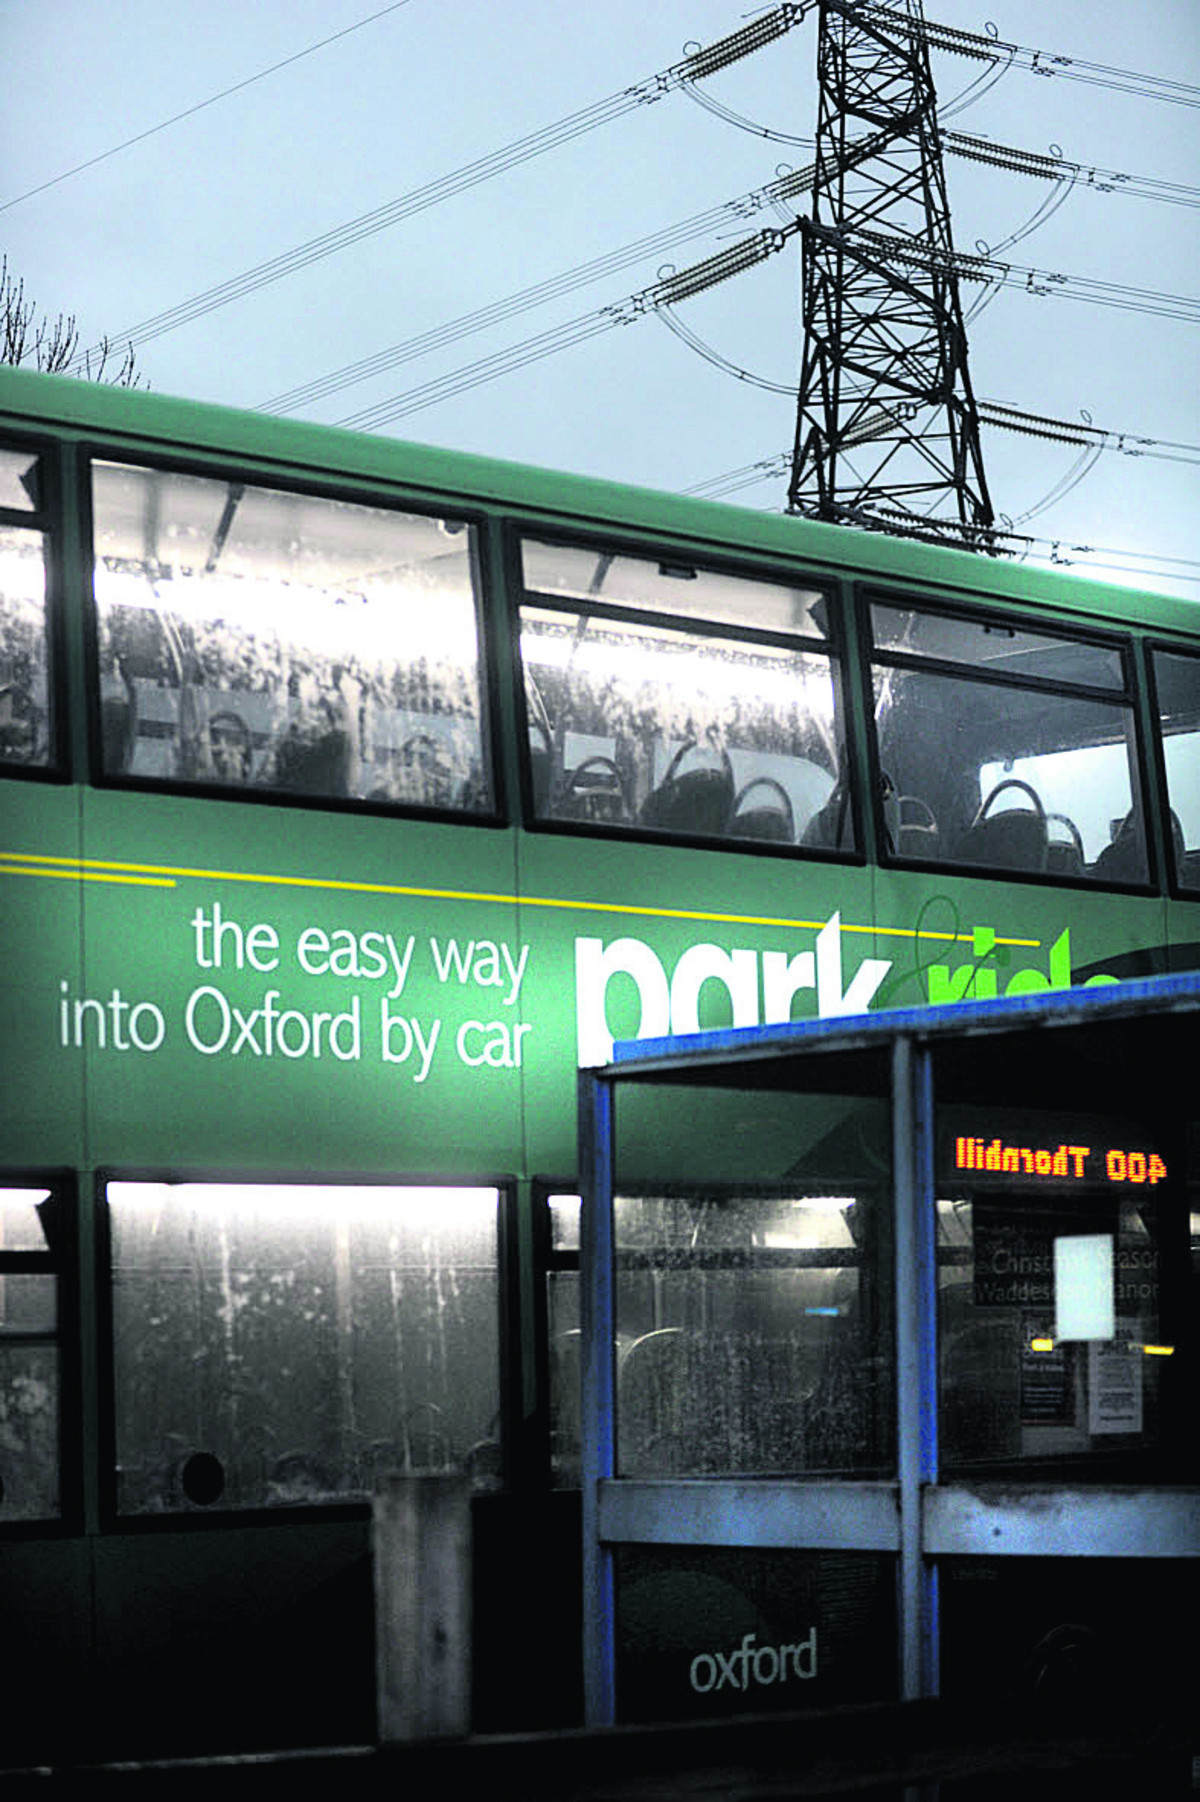 Park-and-Ride services are being diverted